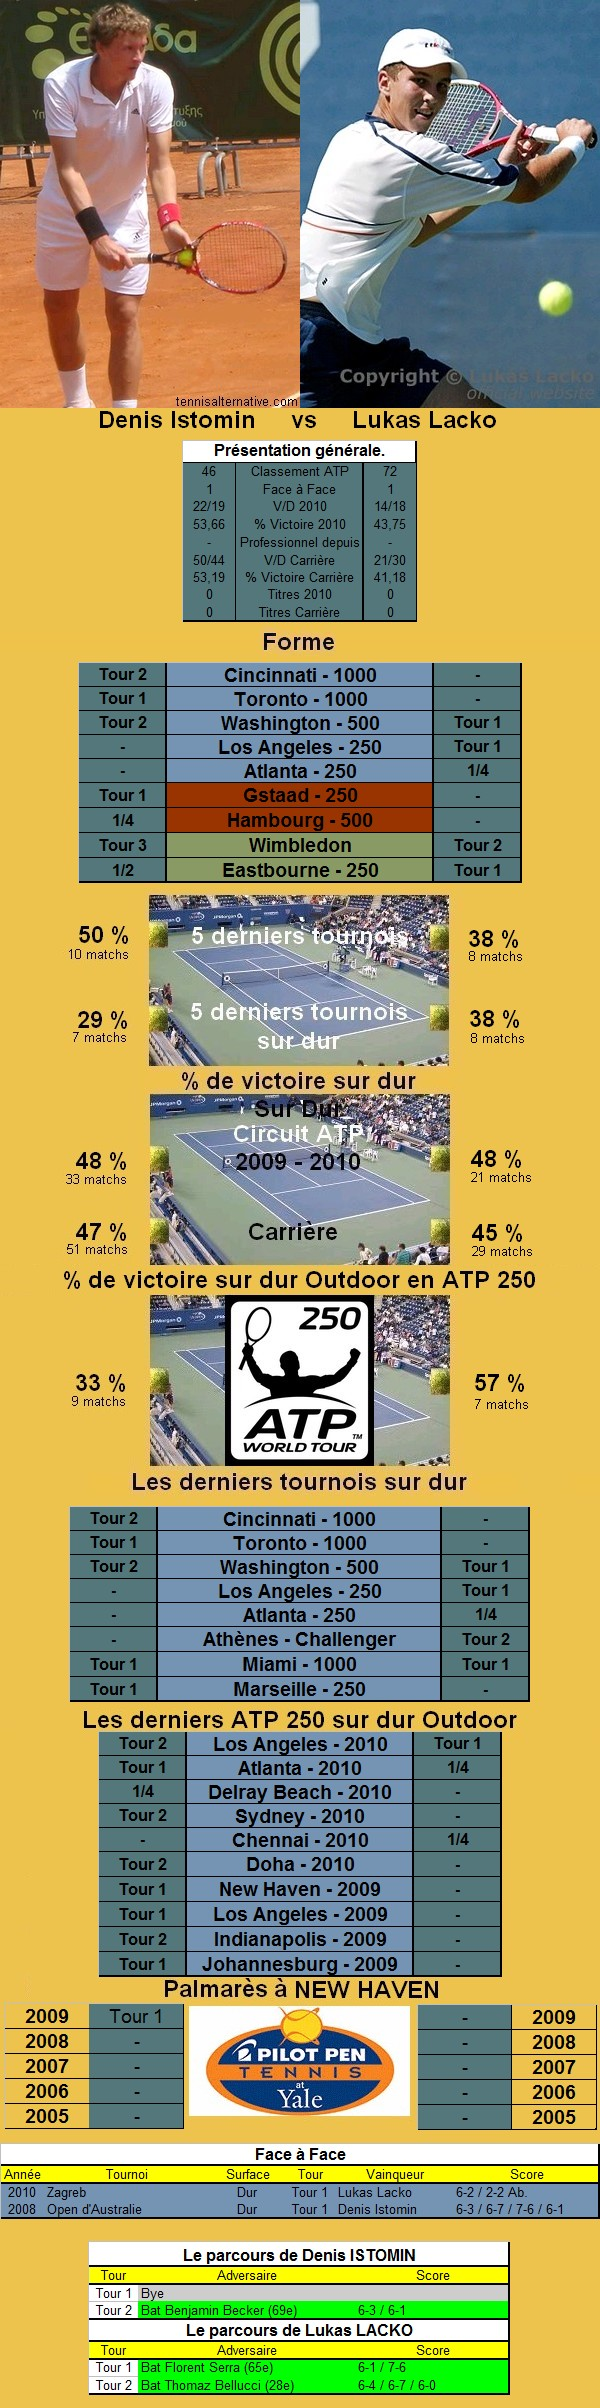 Statistiques tennis de Istomin contre Lacko à New Haven